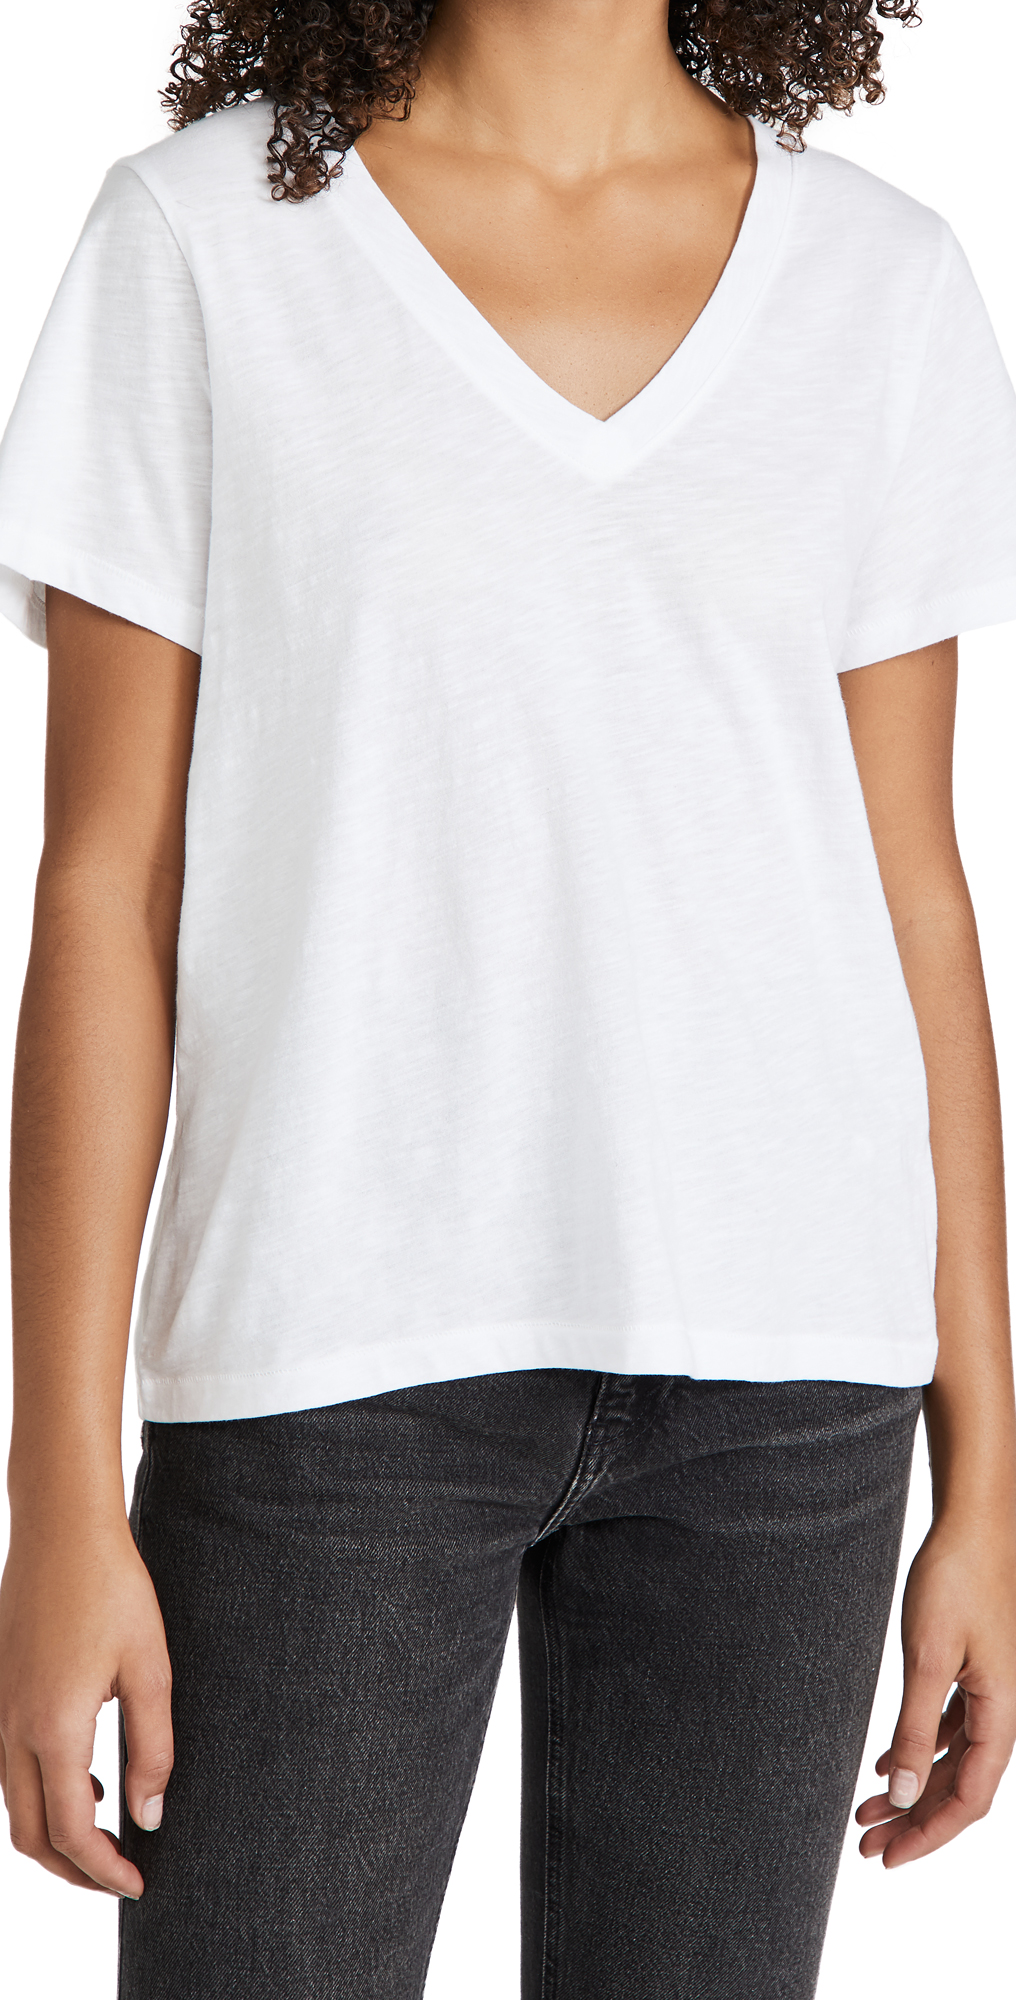 Madewell Whisper Cotton V Neck Tee